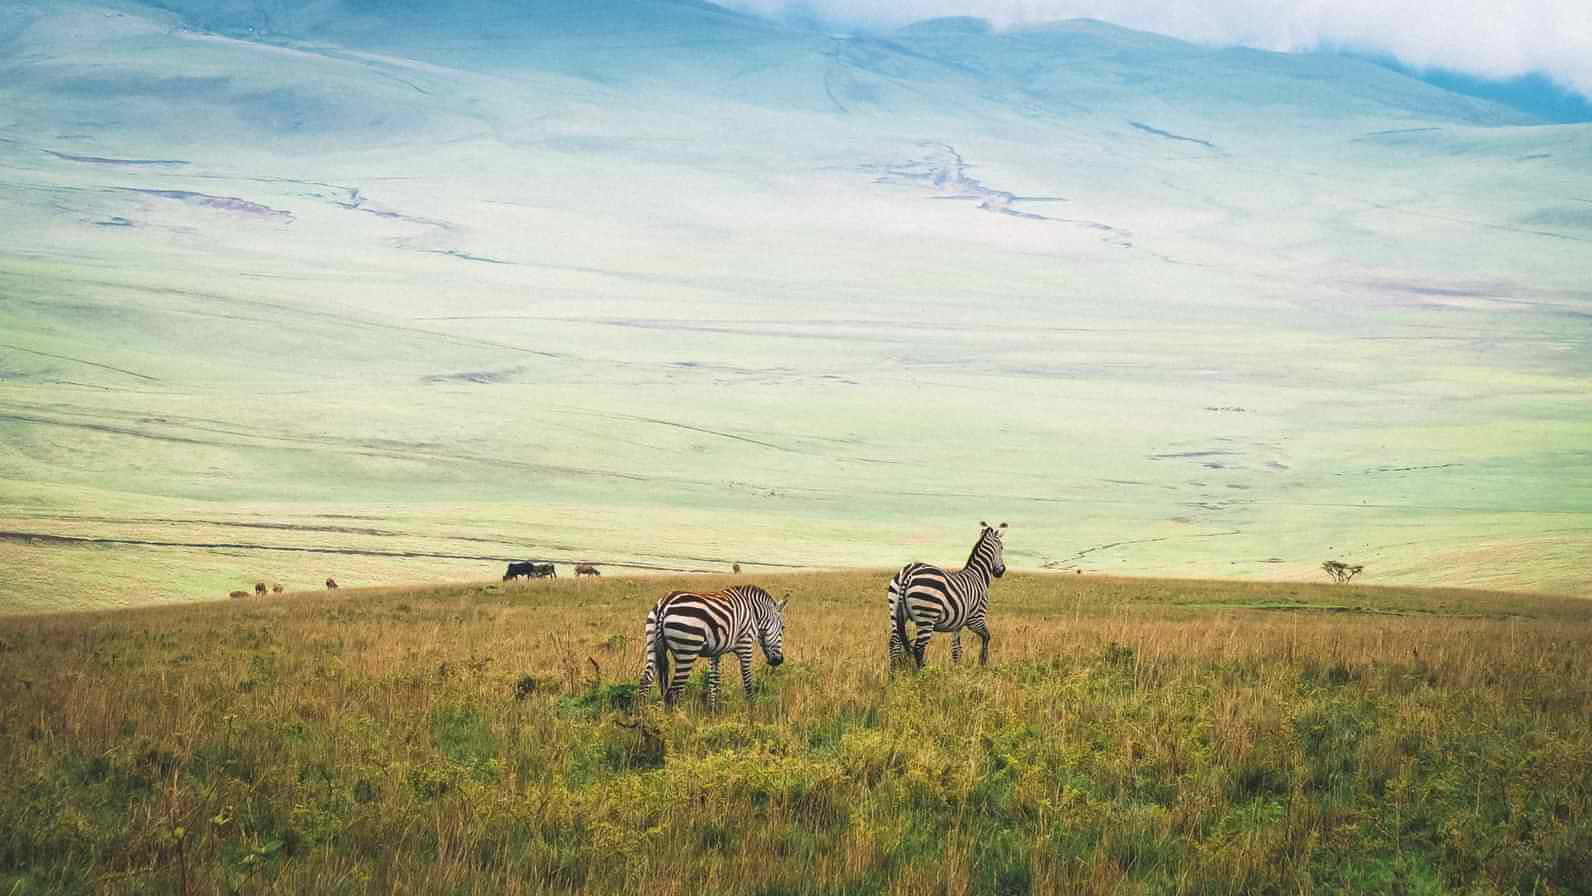 The landscape of the Ngorongoro Conservation Area is out of this world spectacular.